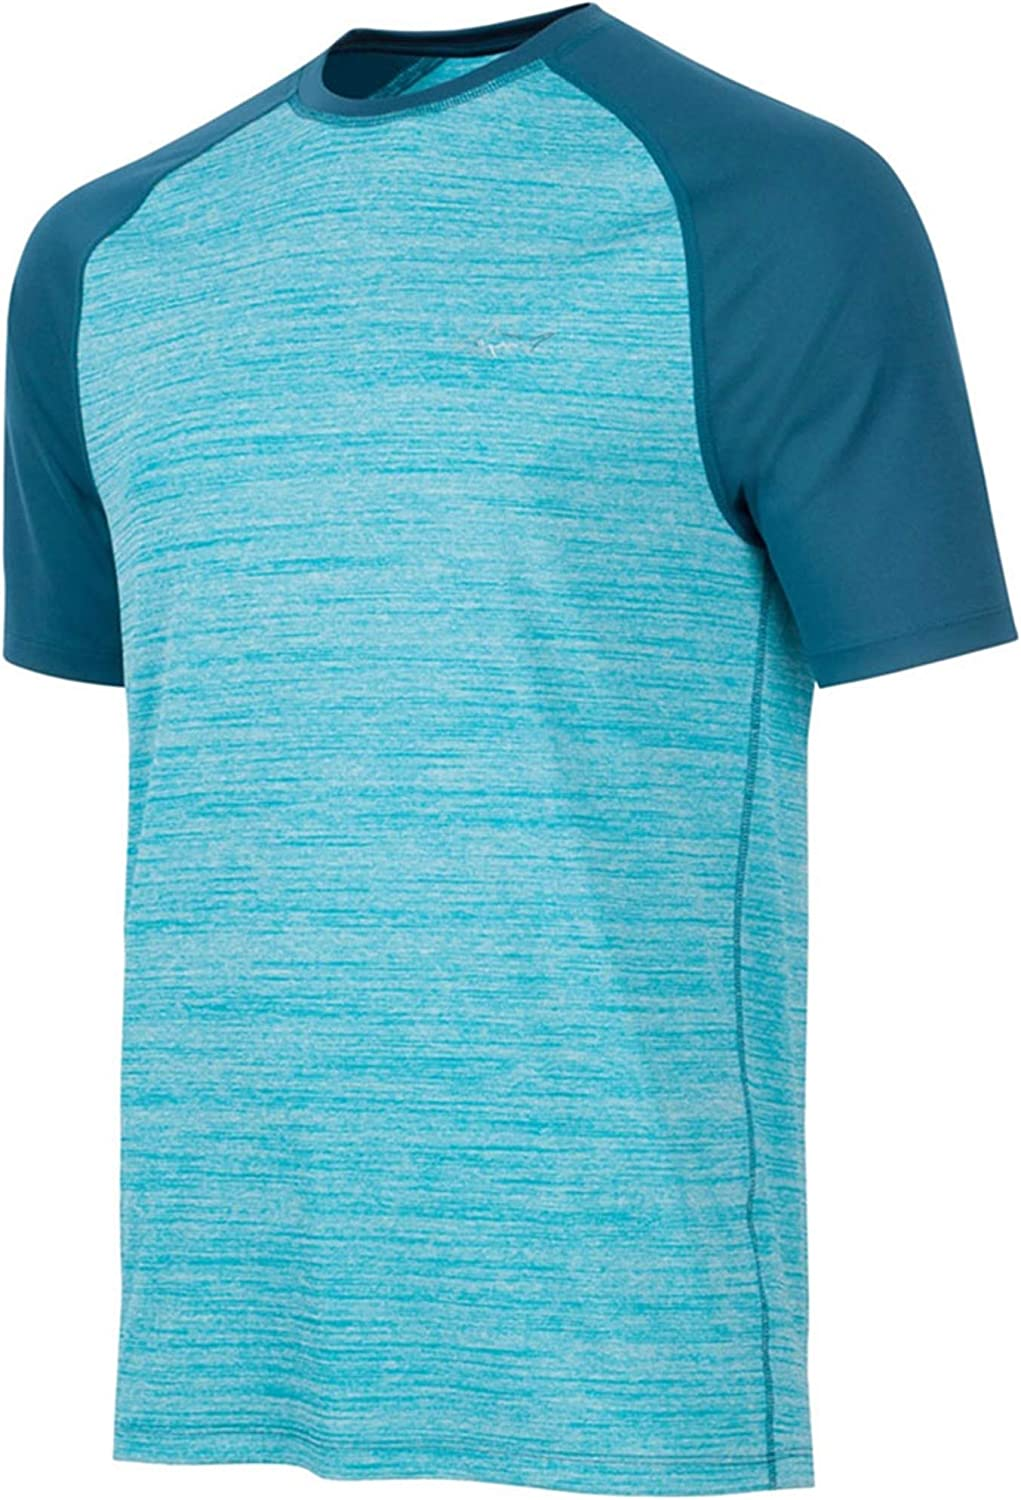 Greg Norman Mens Heathered Rapiddry Graphic T-Shirt